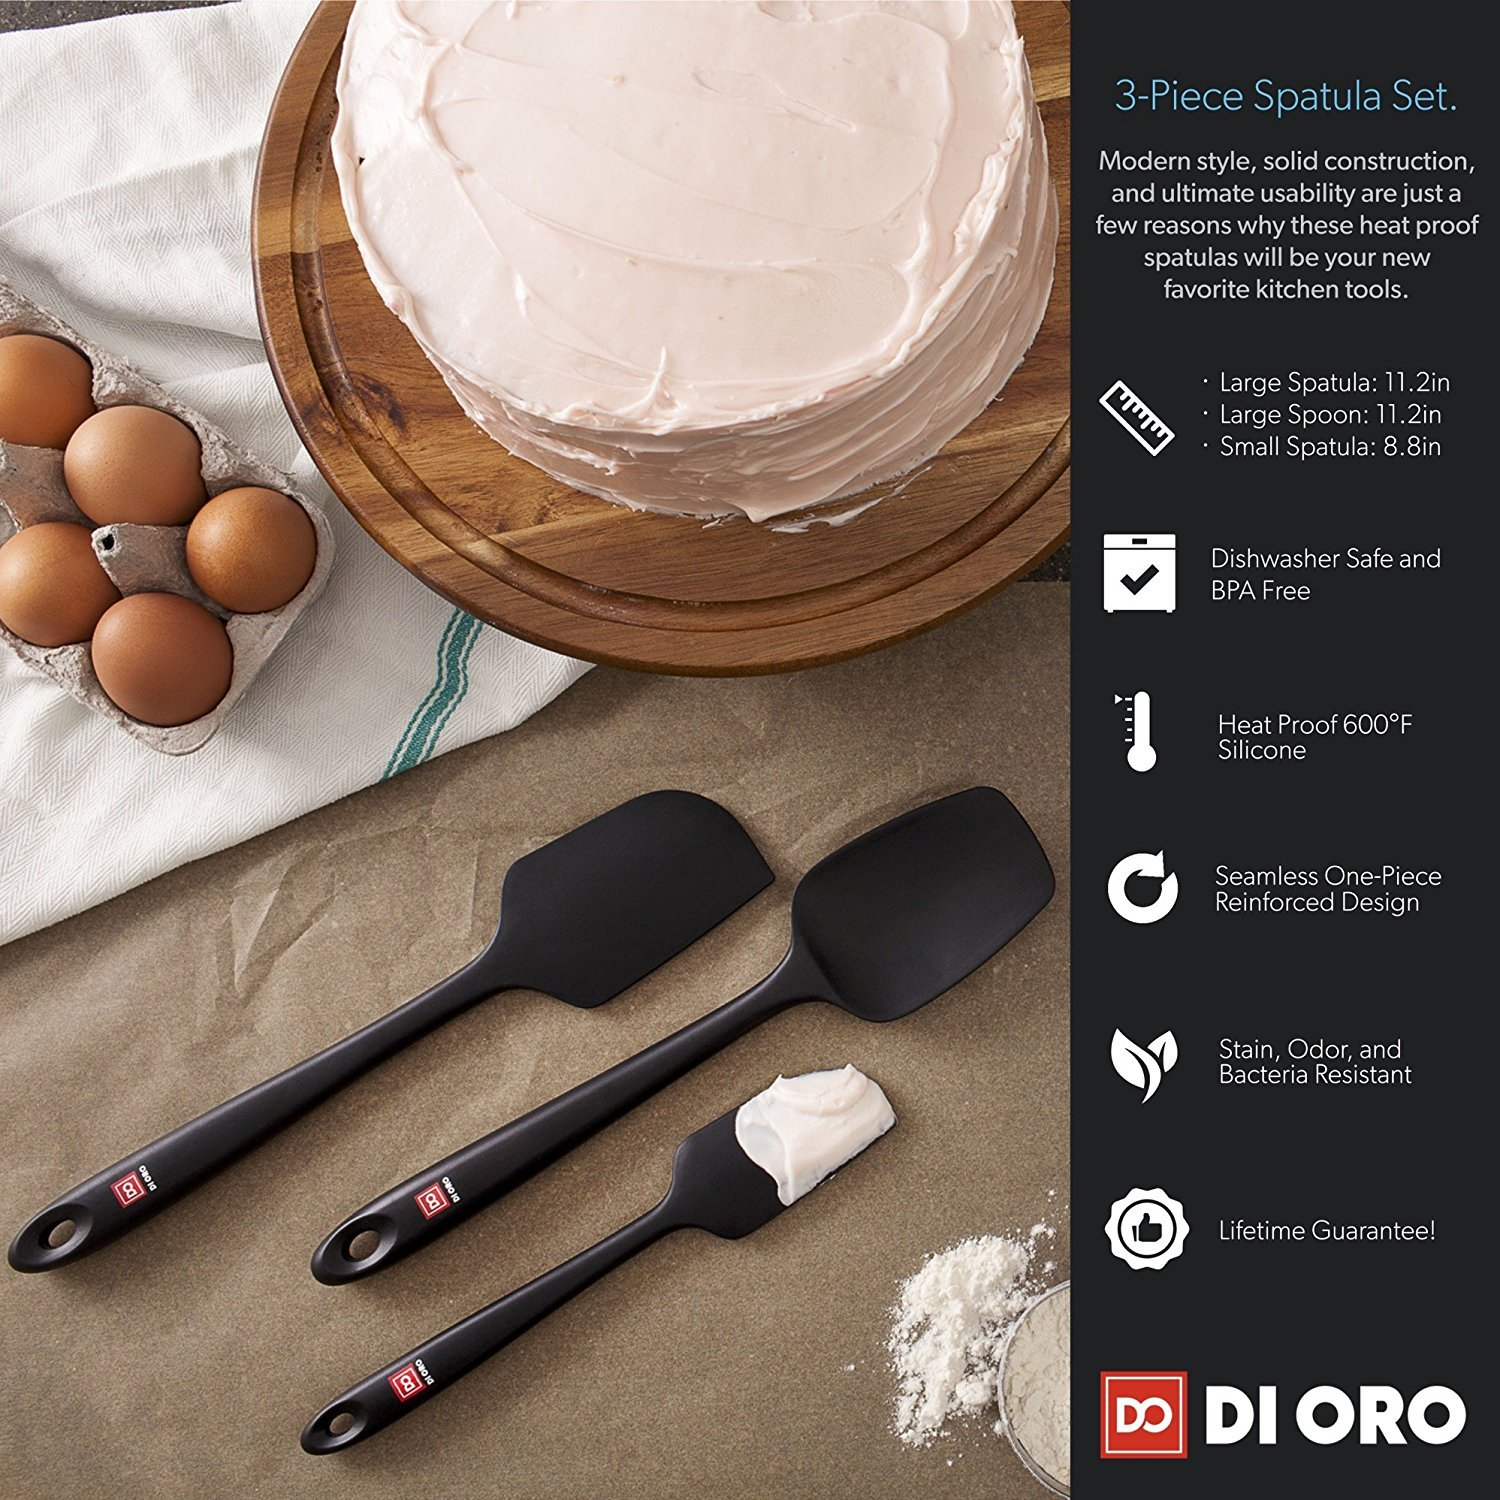 Award-Winning Pro-Grade Black 4-Piece Seamless Silicone Spatula Set By DI ORO Large Spatula Small//Mini Spatula 600/°F Heat-Resistant Premium Rubber Spatulas and Jar Spatula di Oro Living DOL-SSS-005 Best Spoonula